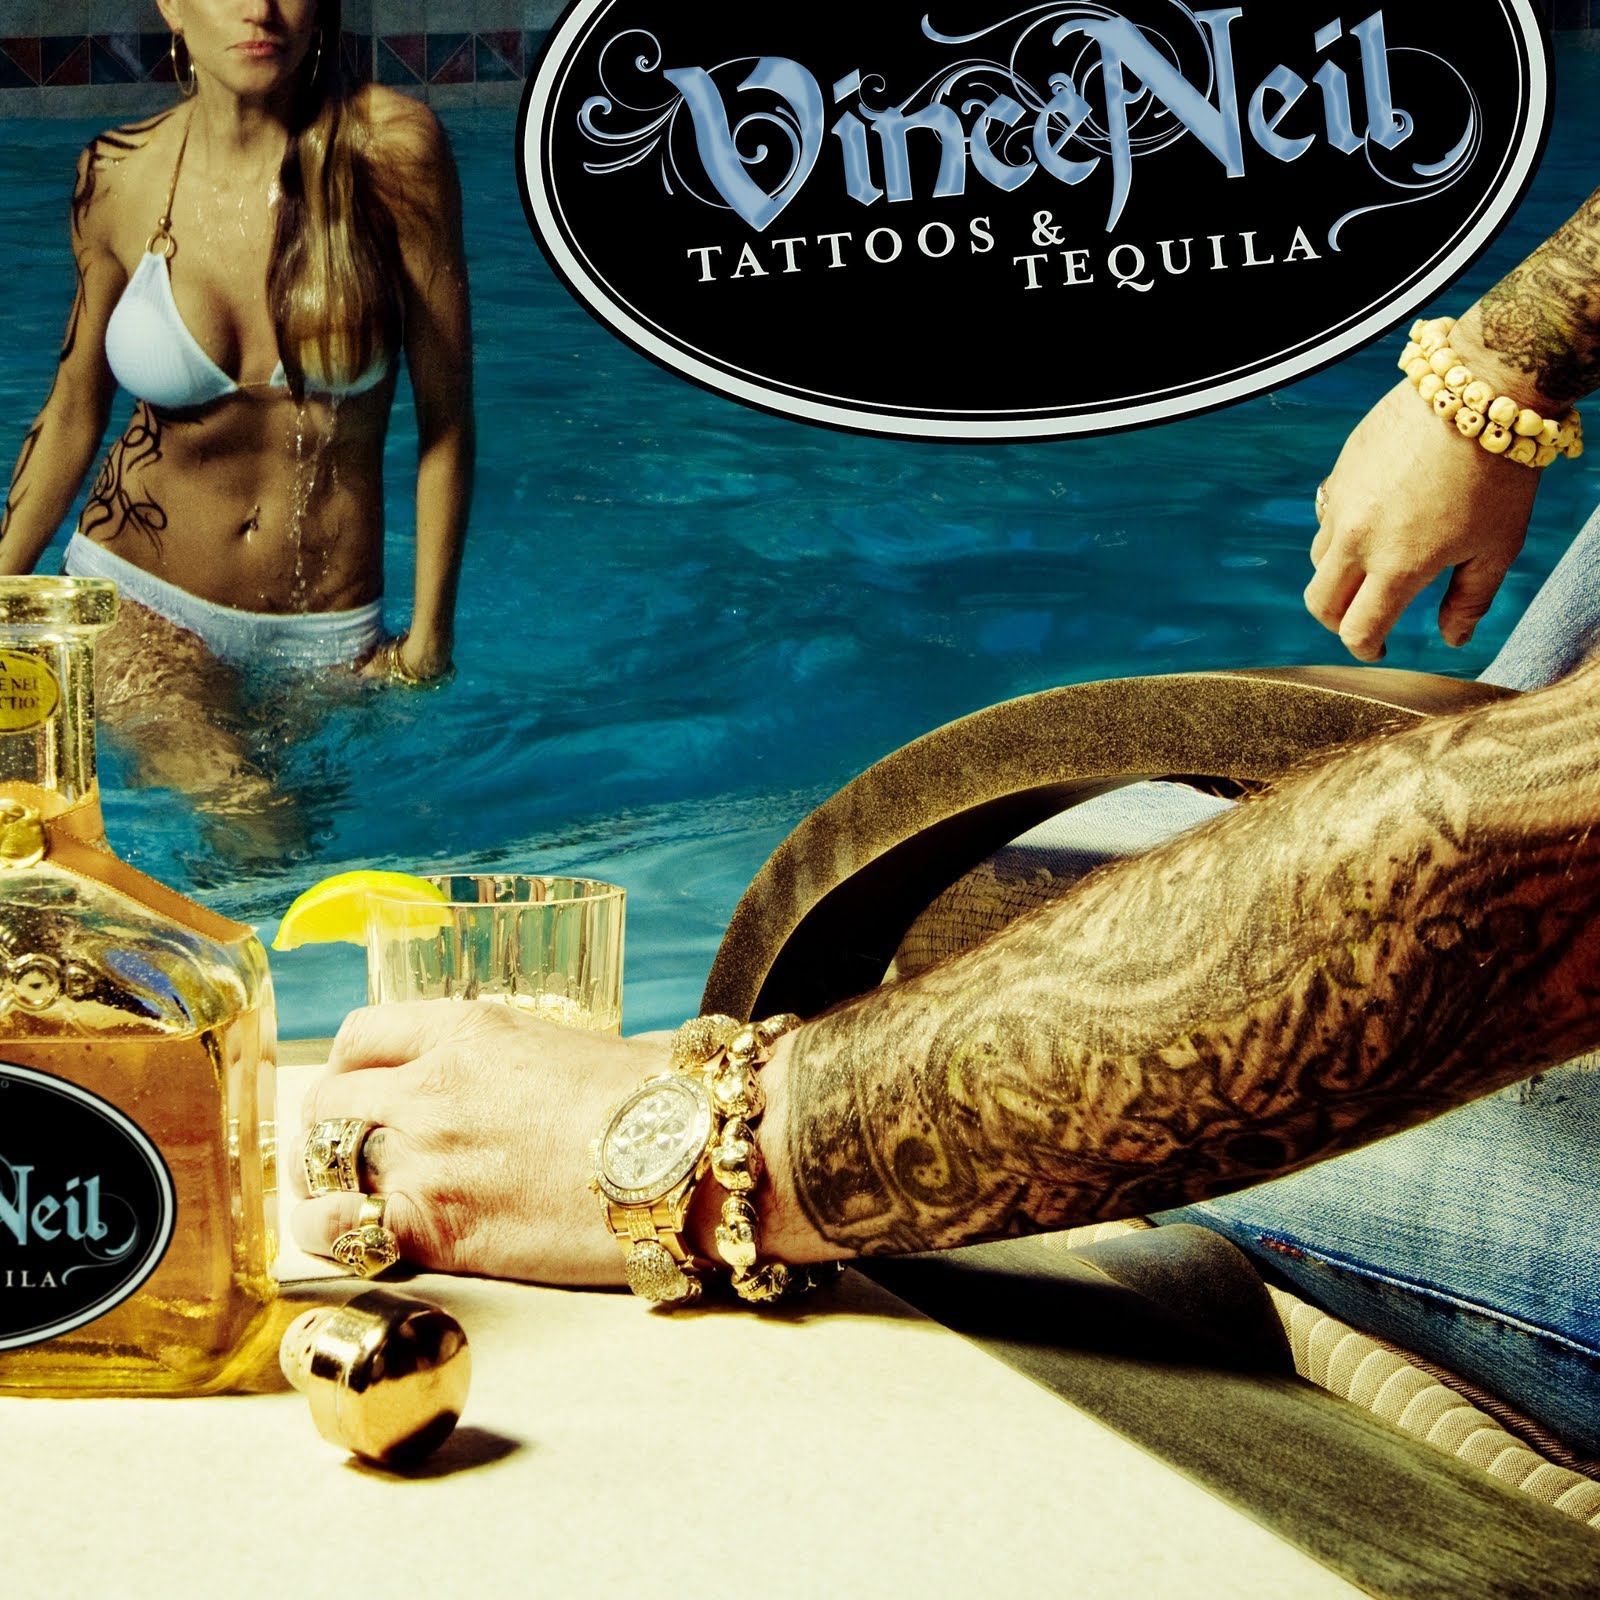 music photo blog vince neil tattoos tequila june 2010